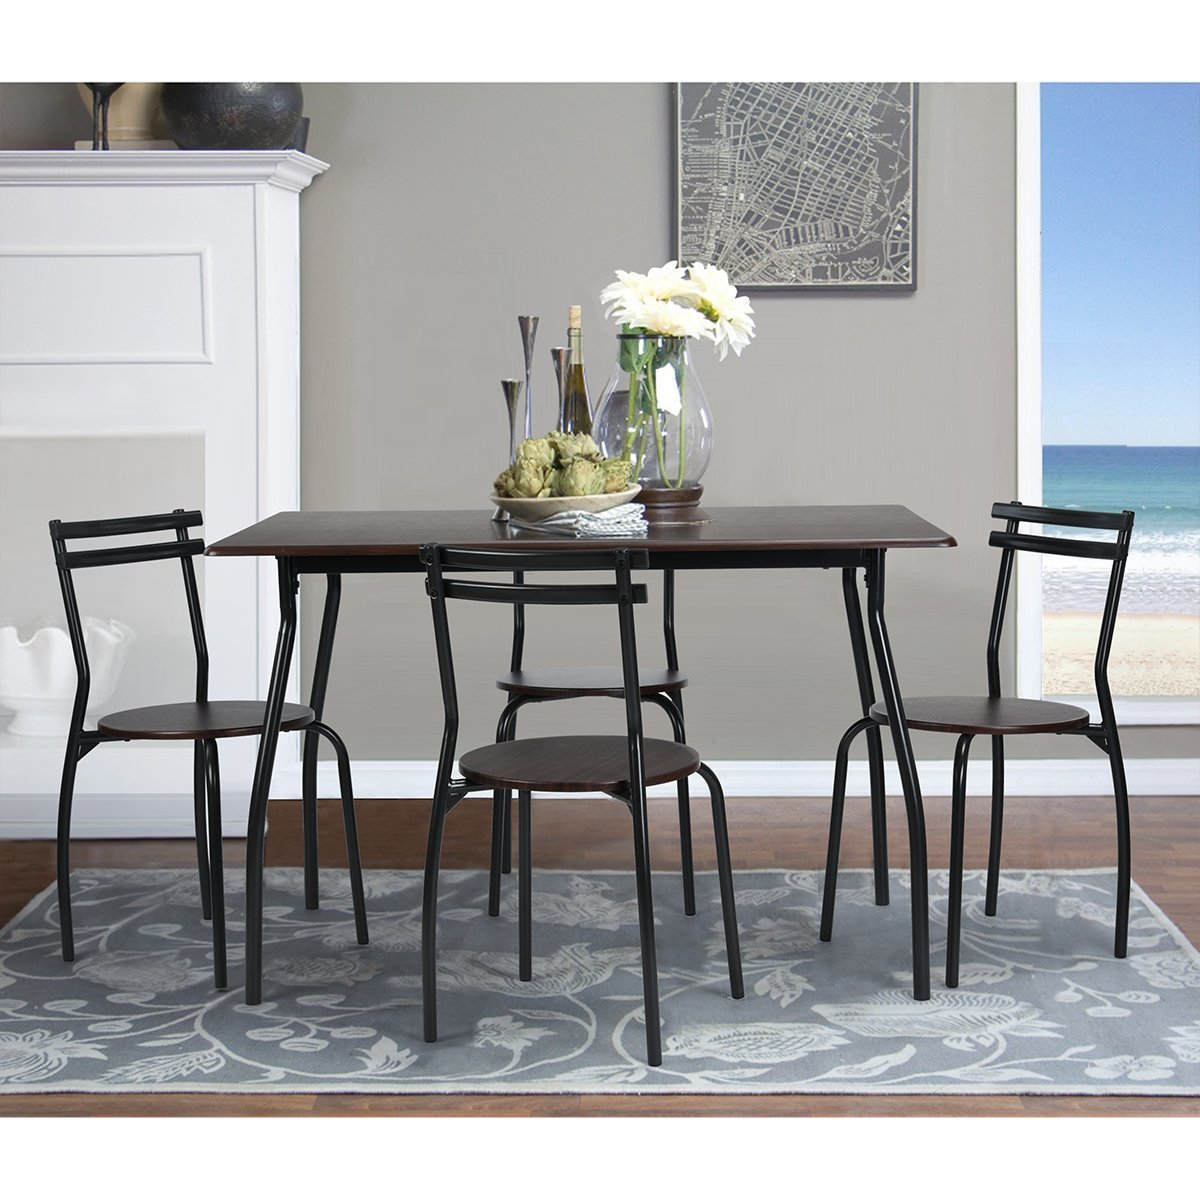 Coavas 5pcs Dining Table Set Kitchen Furniture Kitchen Table Rectangle Dining  Table With 4 Round Dining